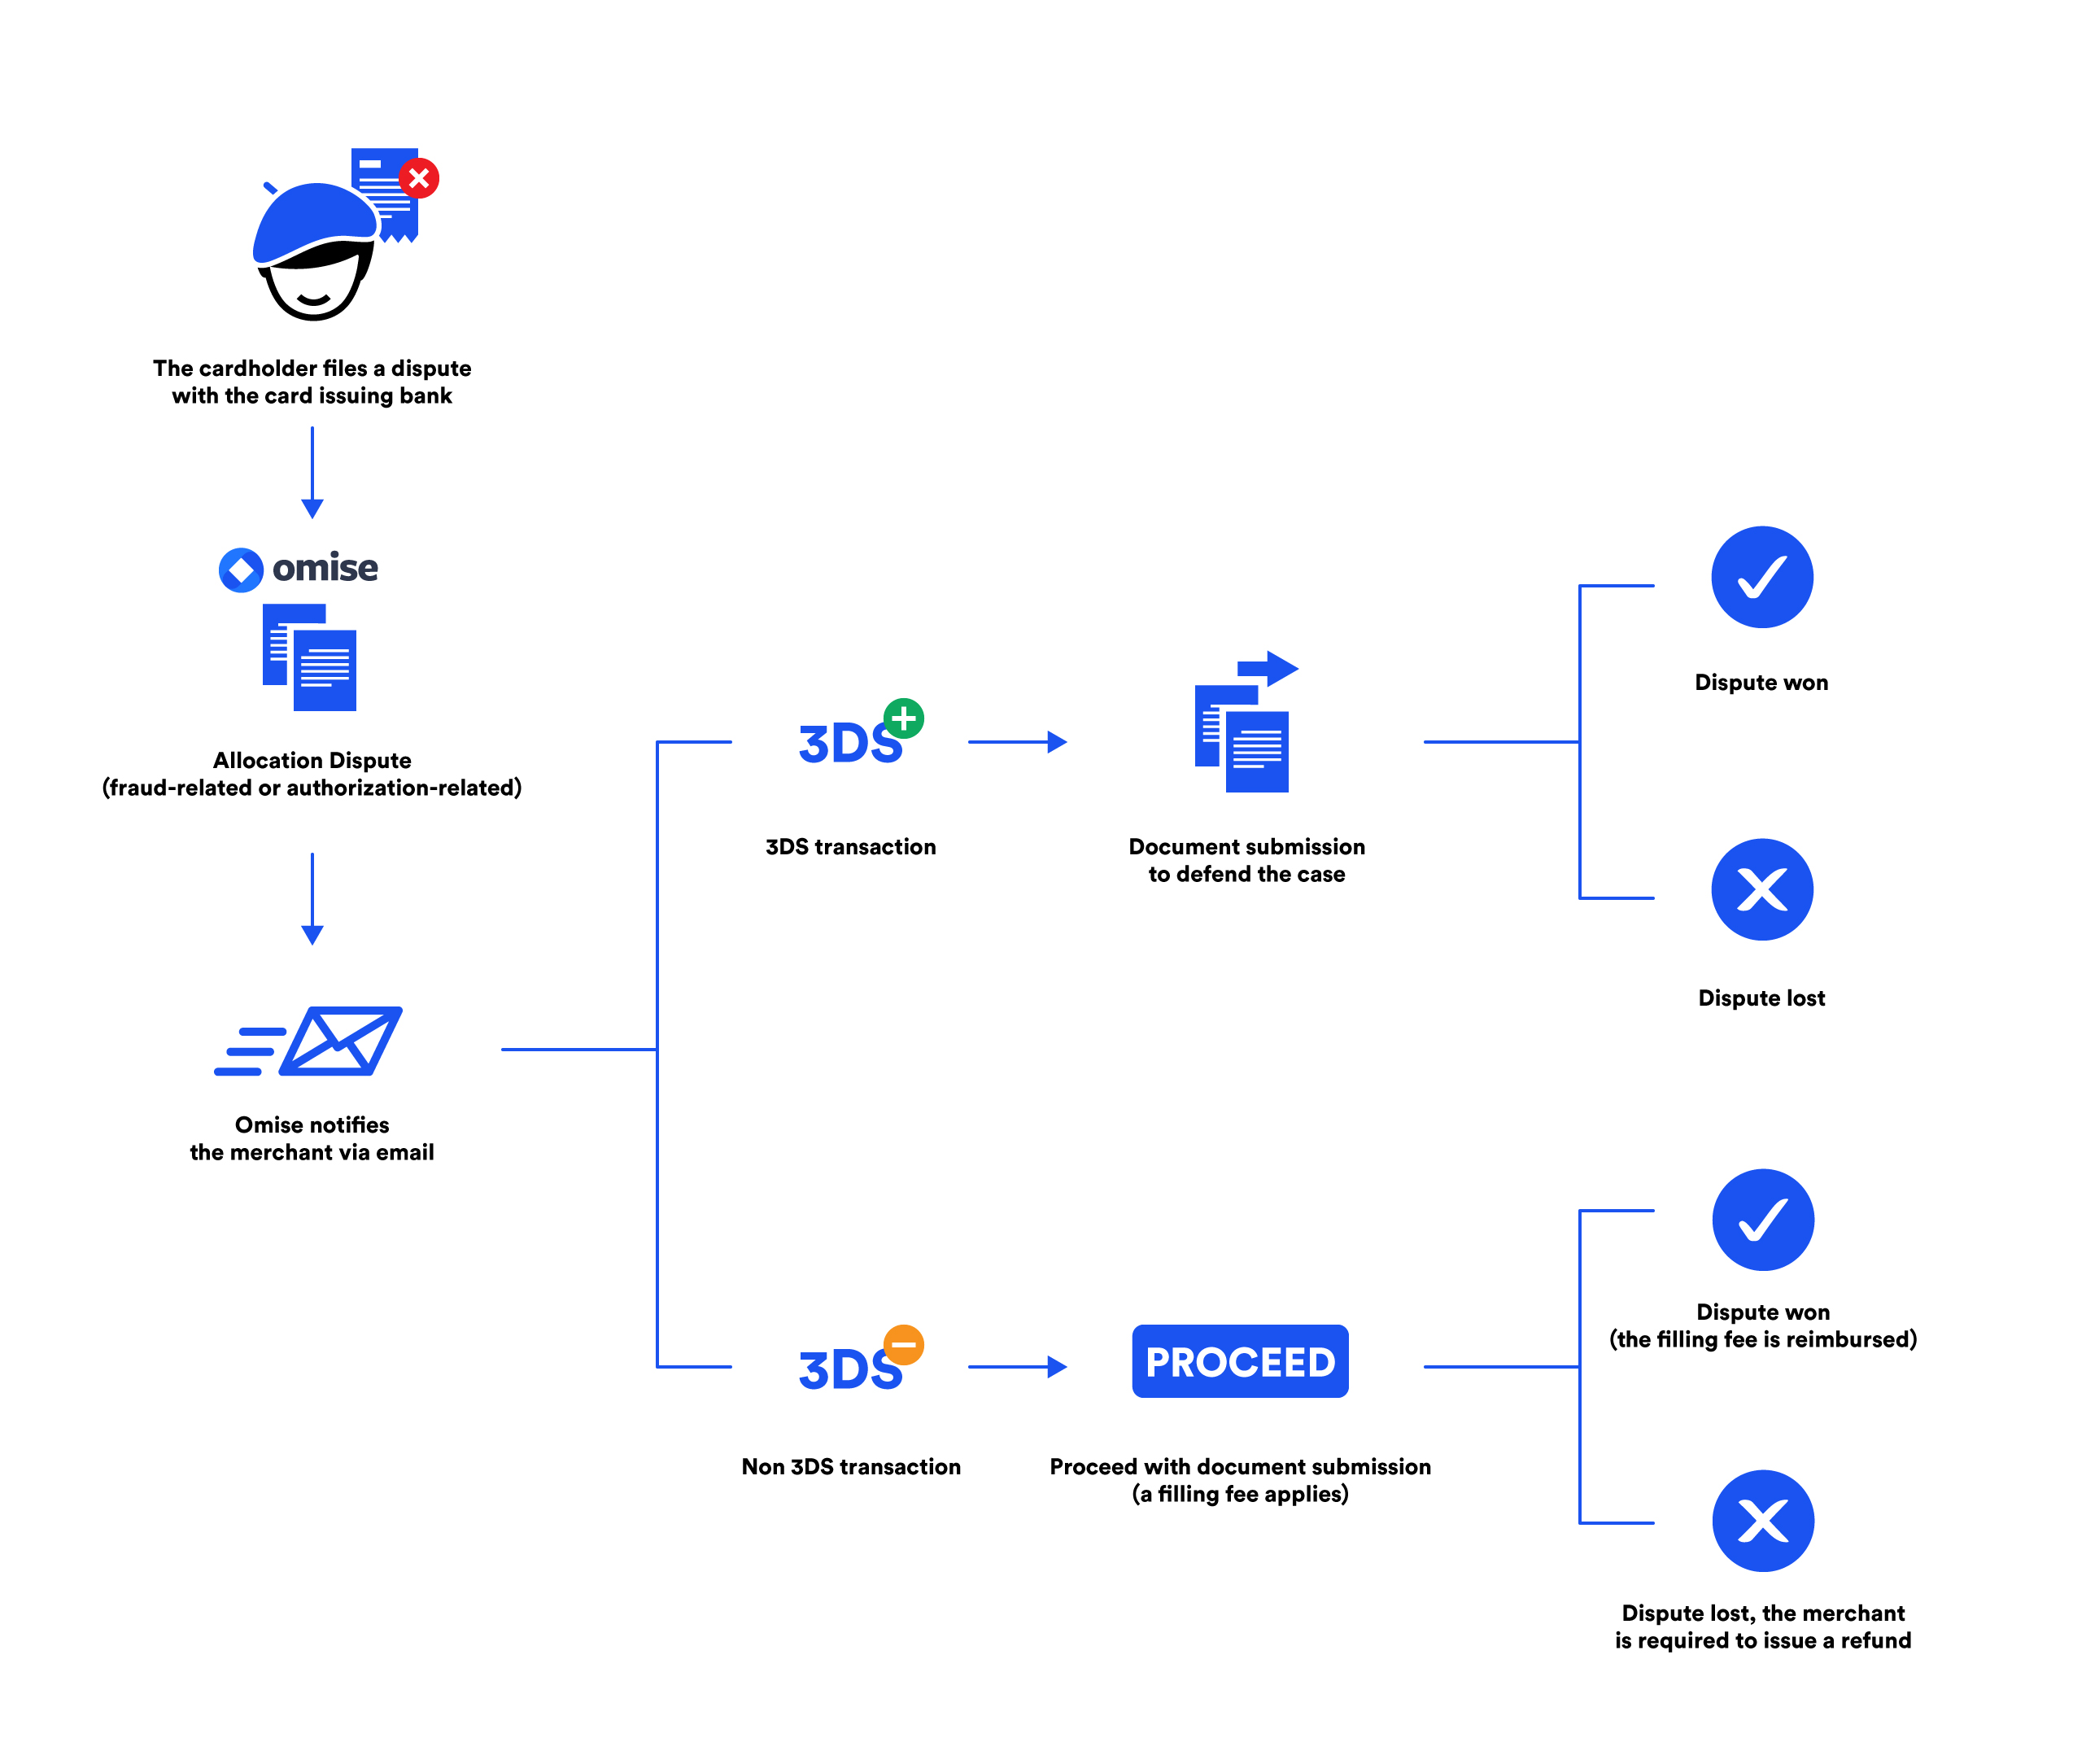 new dispute process for allocation disputes